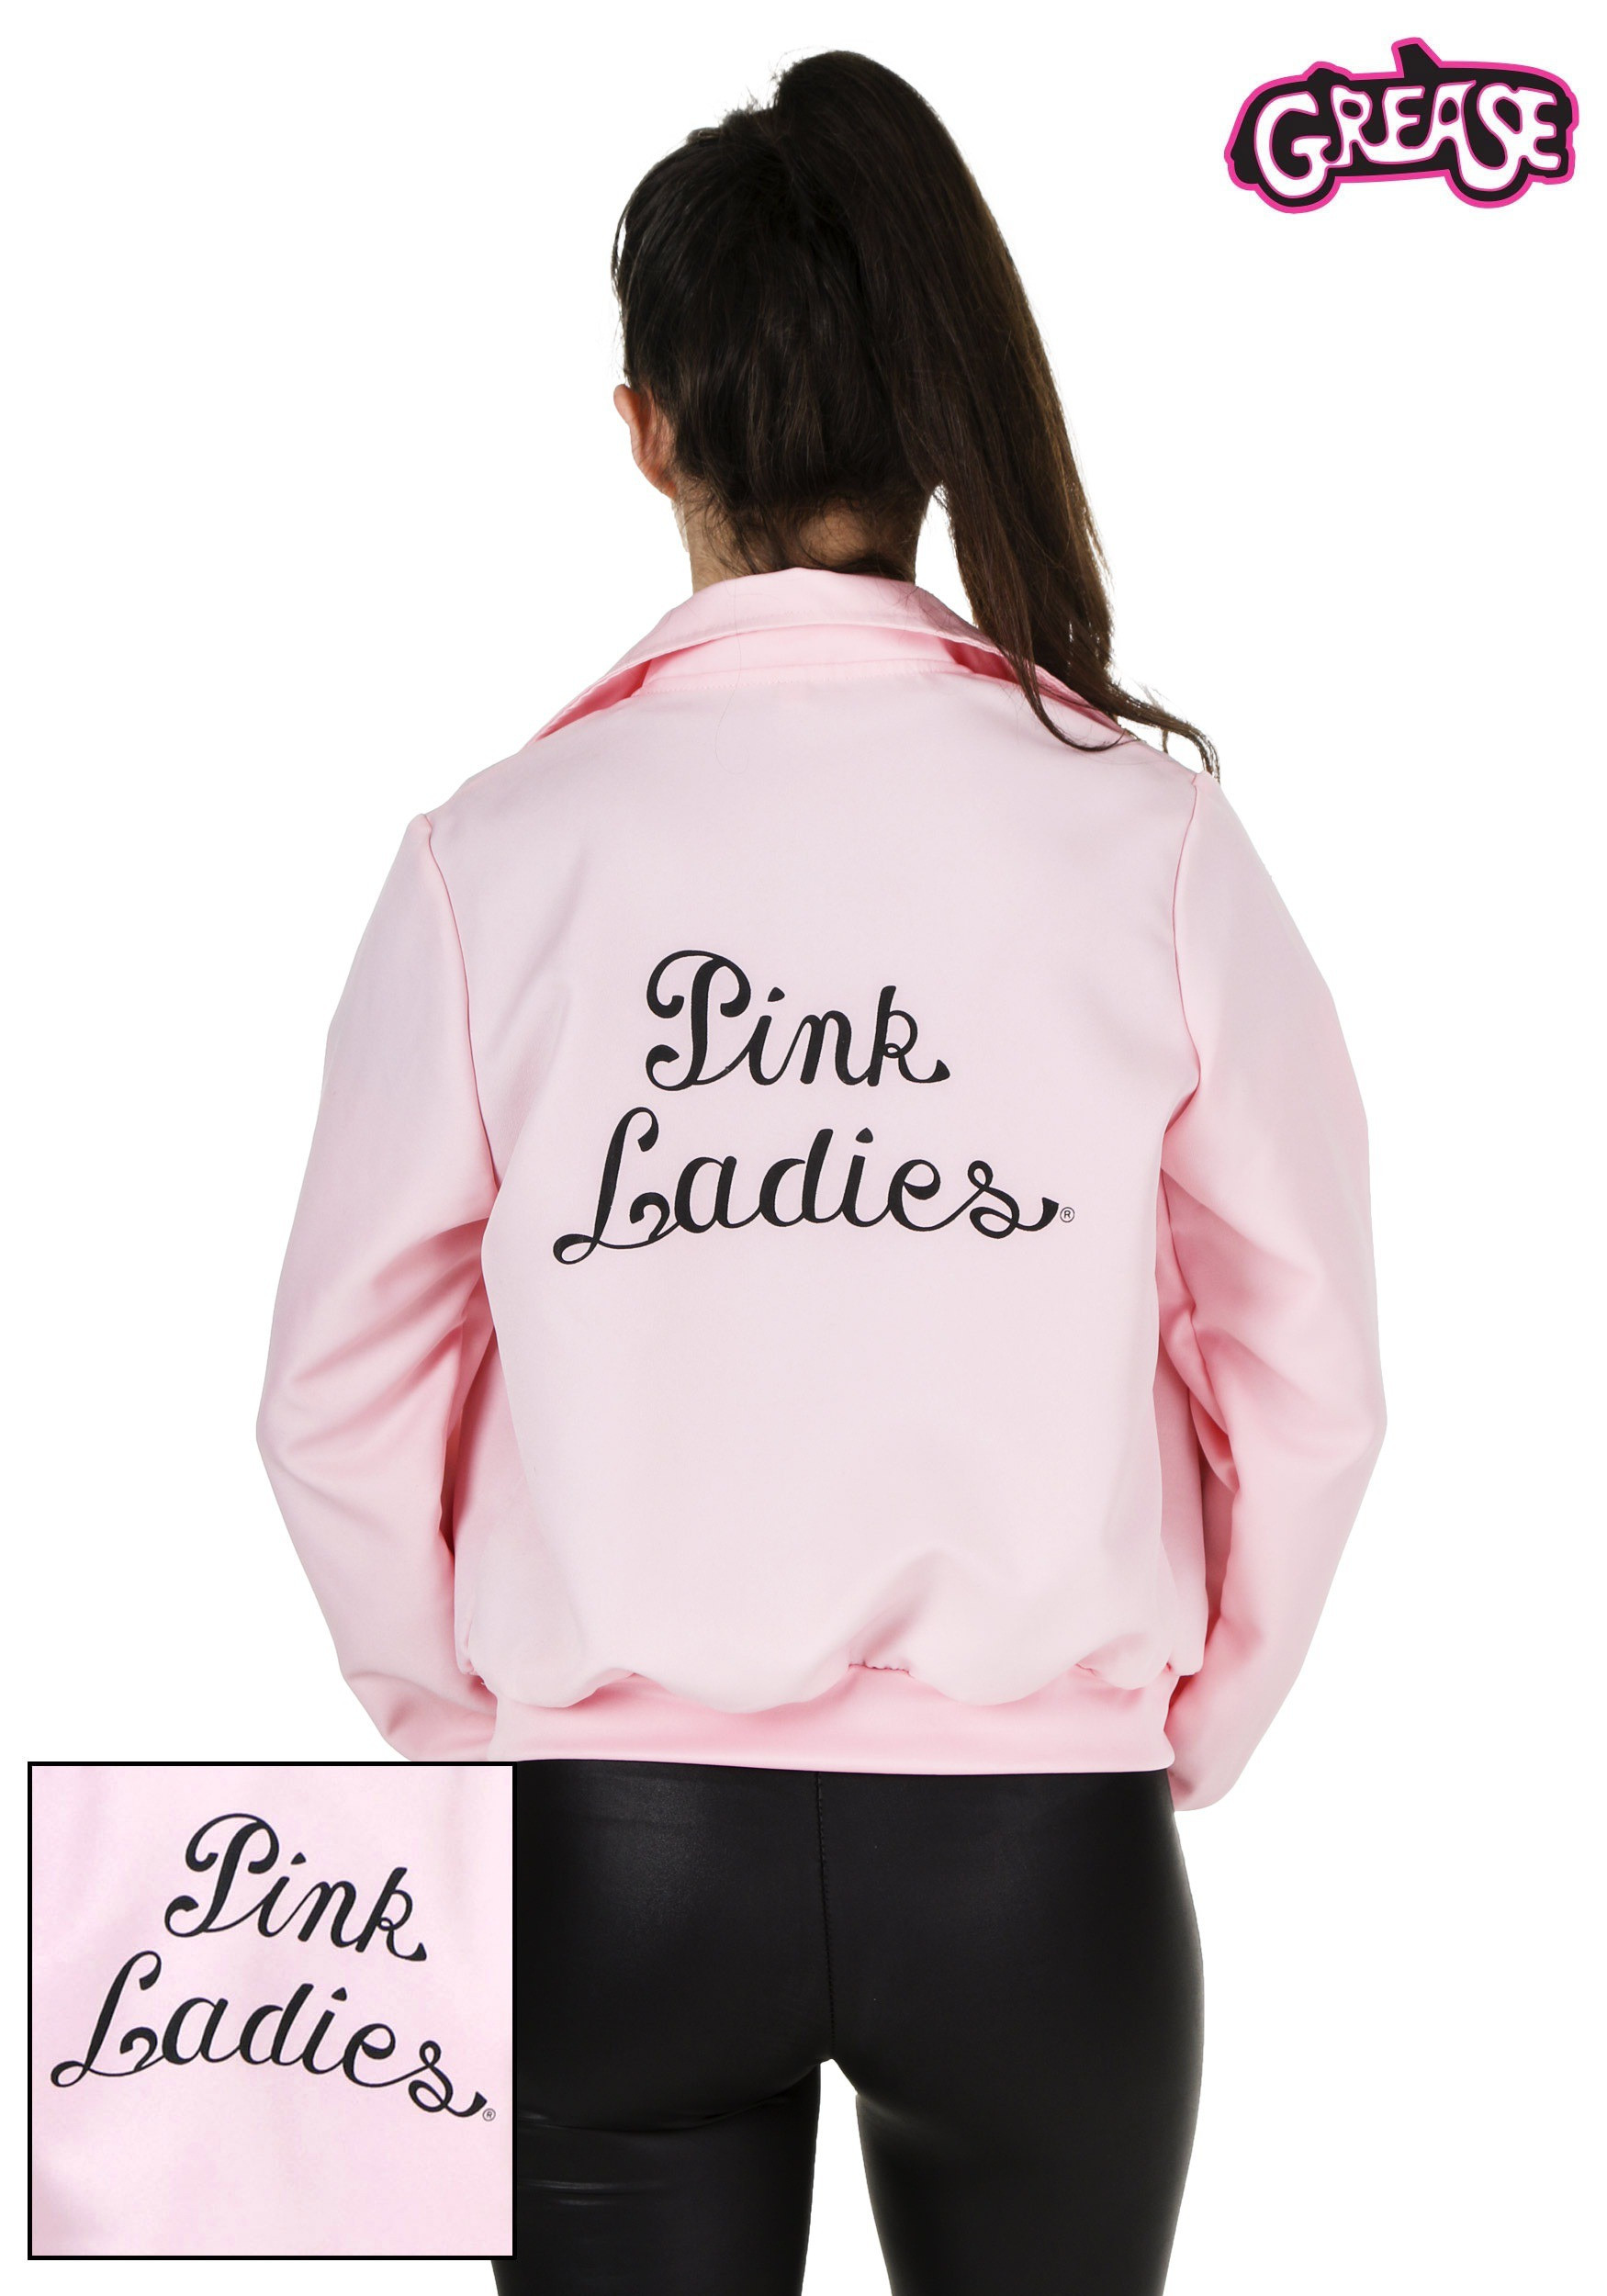 Deluxe Pink Ladies Jacket for Women